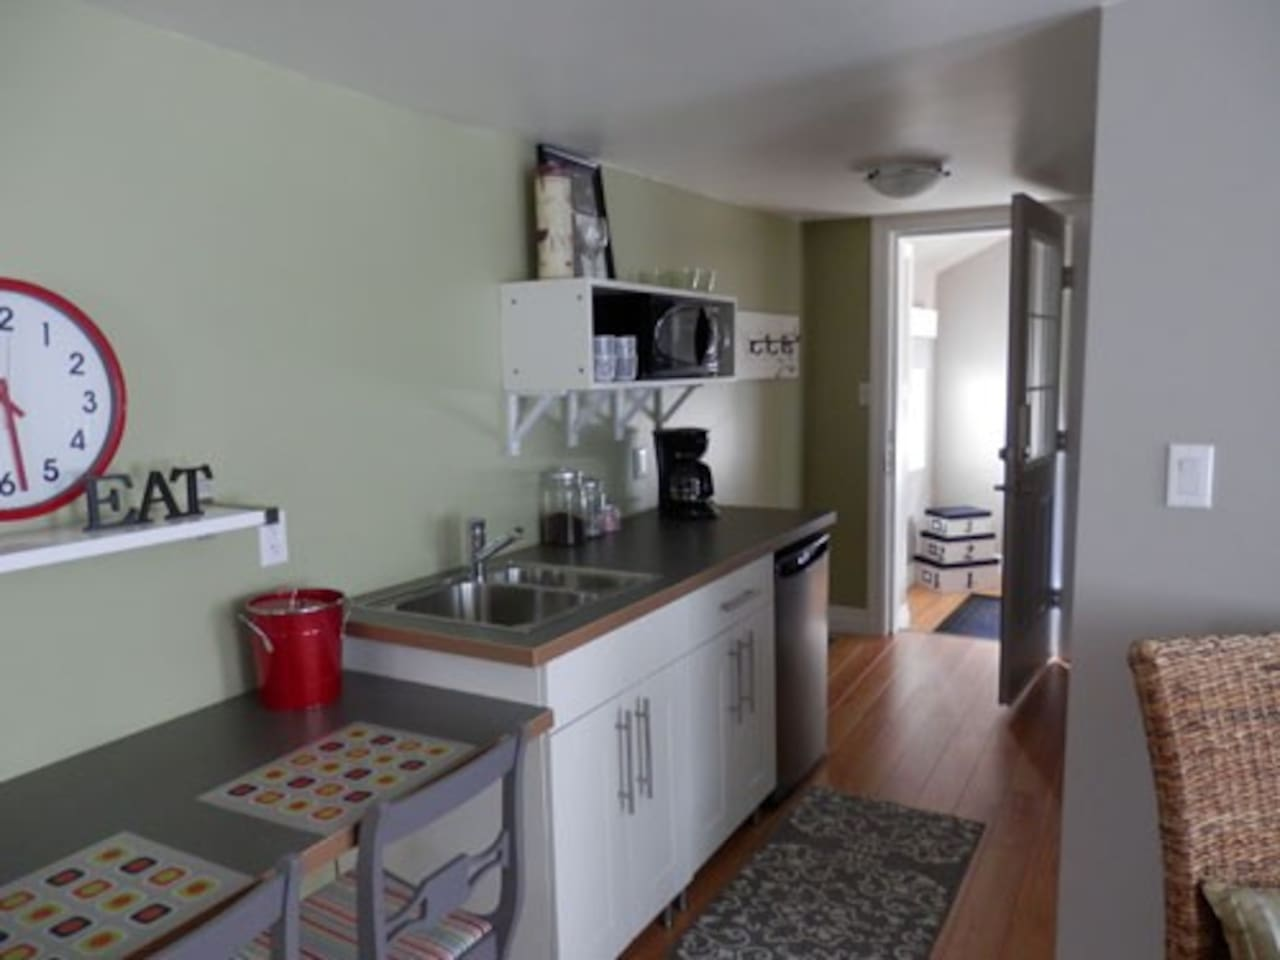 Convenience kitchen with microwave, fridge, 2 person eating bar.